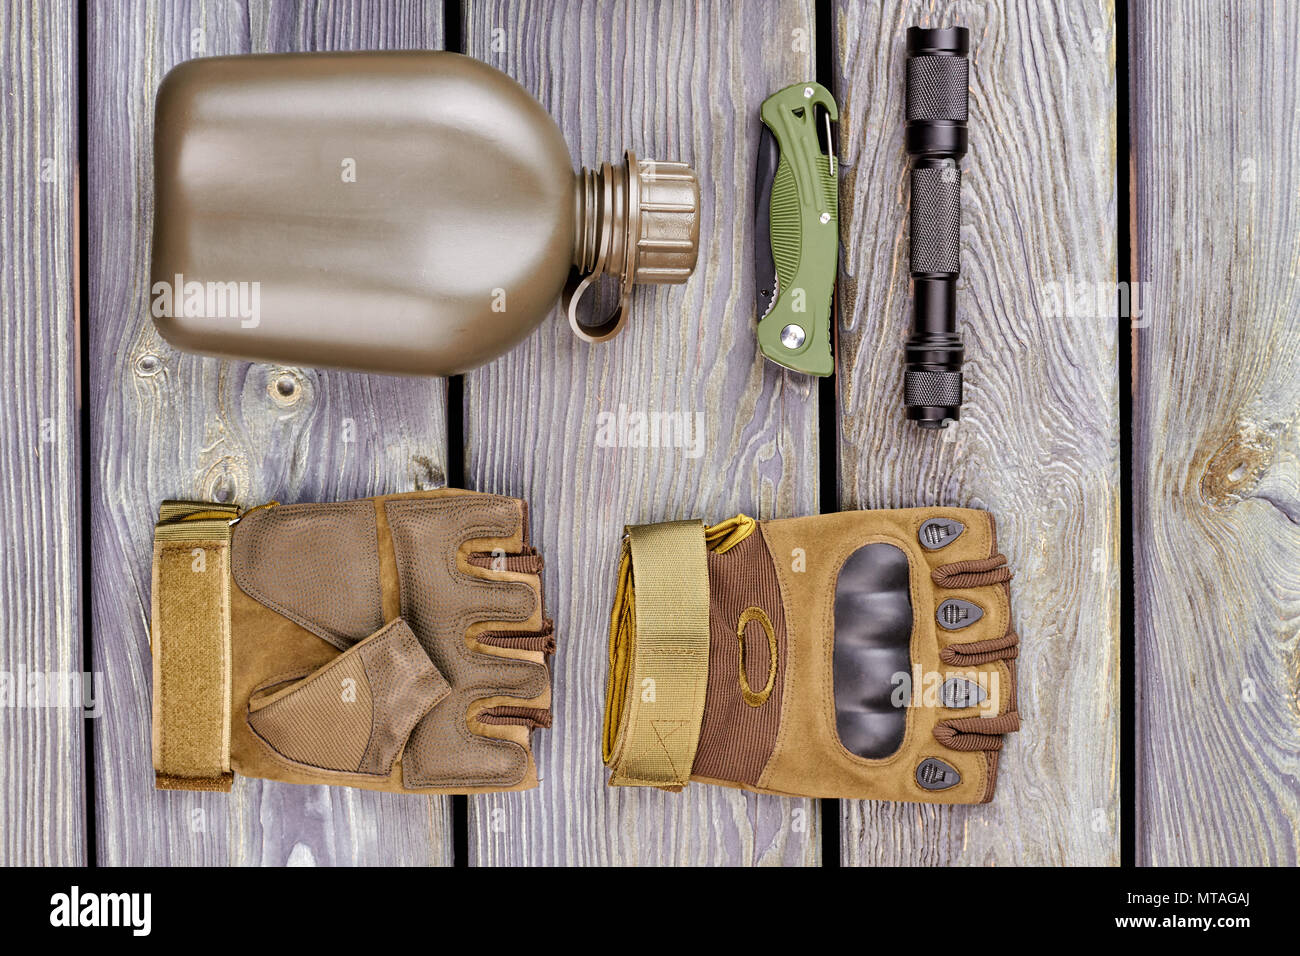 Military bottle, pair of gloves, pocketknife and torch. Wooden desk background. - Stock Image